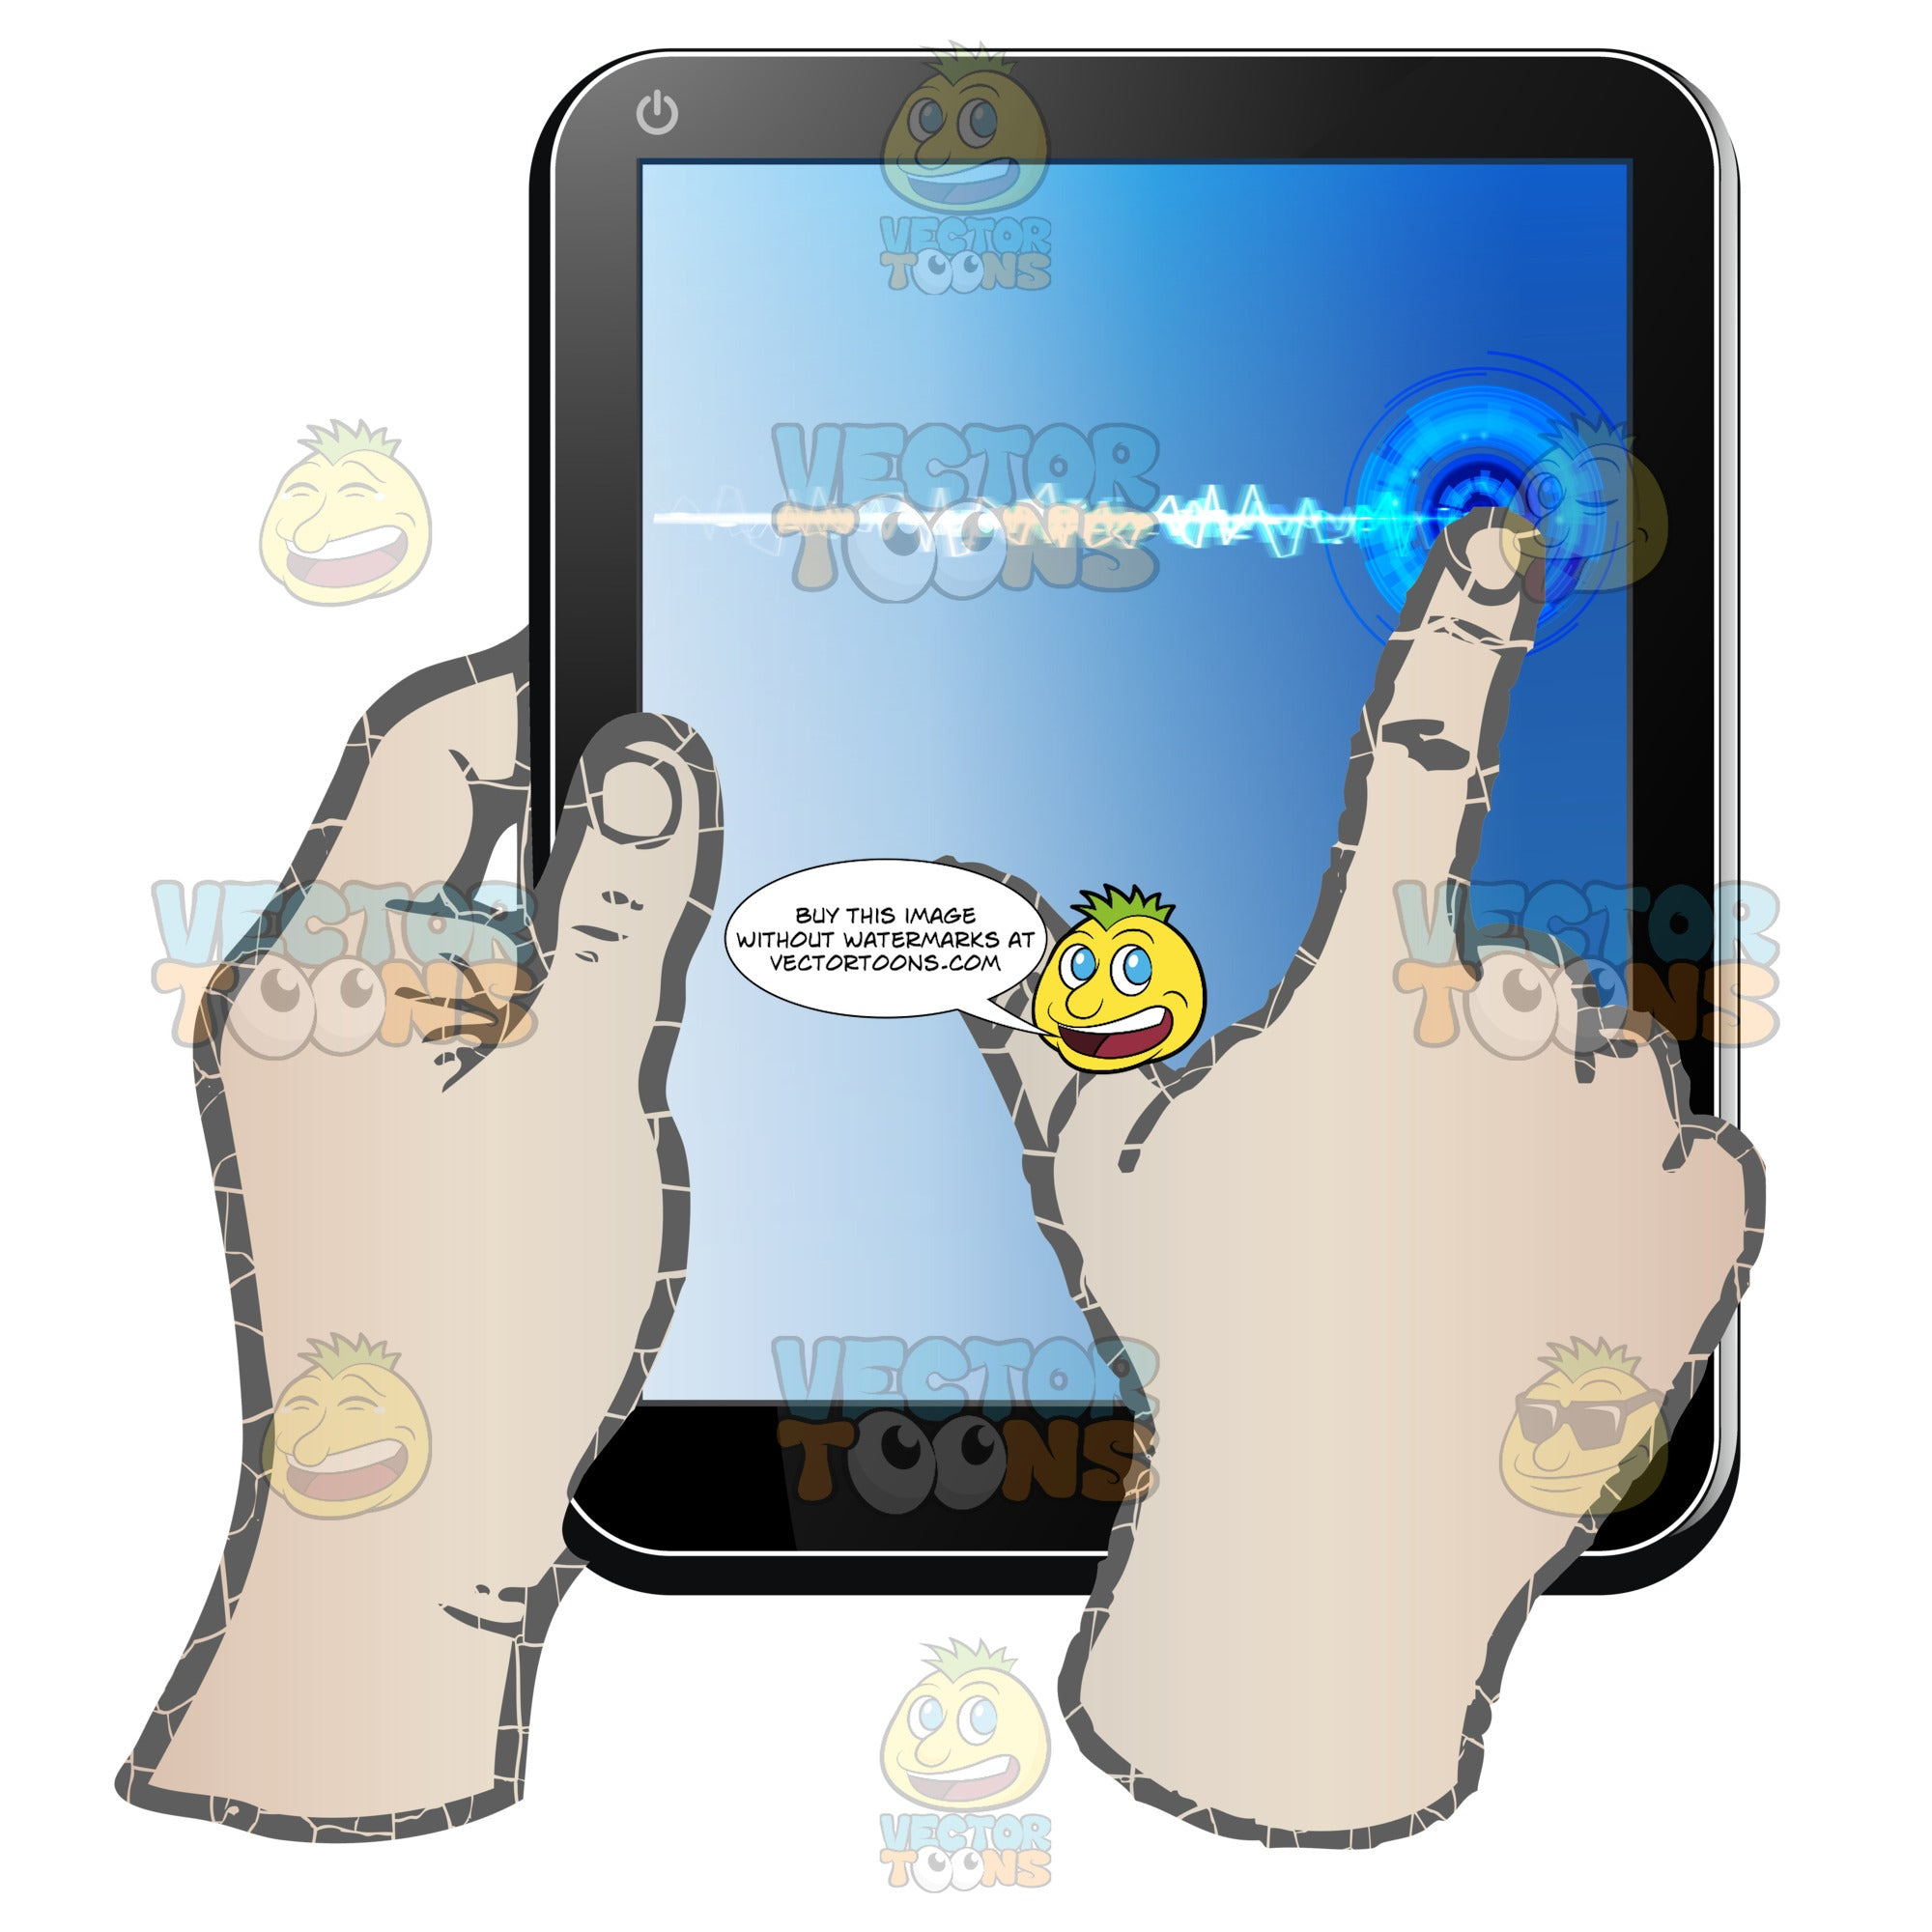 Black Computer Tablet Held Vertically, Left Hand Holding Tablet, Right Hand Dragging Finger Across Blue Screen In Straight Line